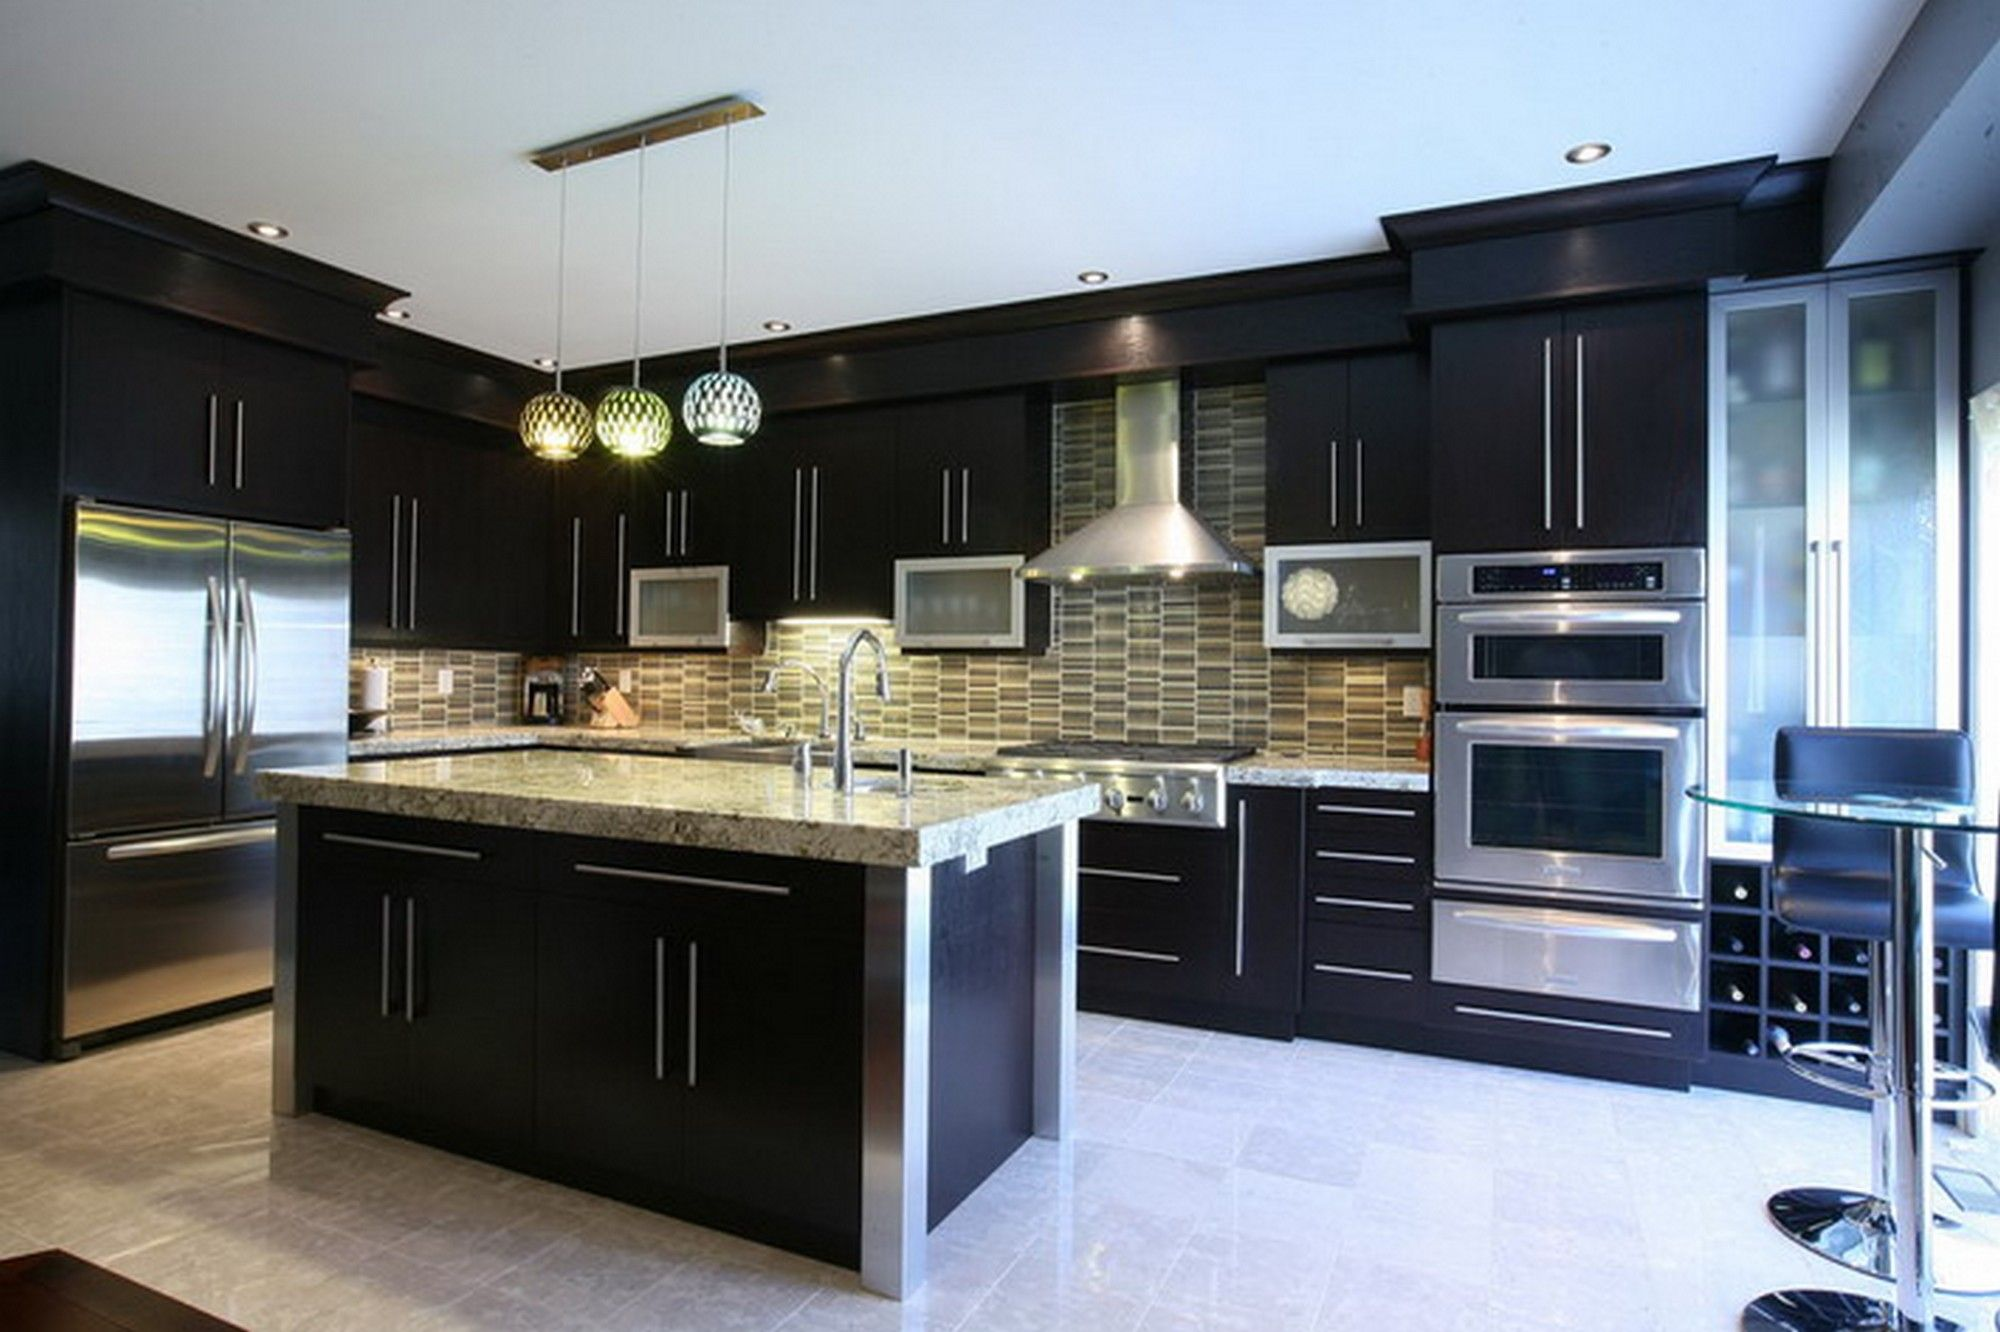 Inland Empire Marble And Granite Premium Granites Premium Granite Is A Full Service Of Contemporary Kitchen Design Best Kitchen Designs Kitchen Designs Layout